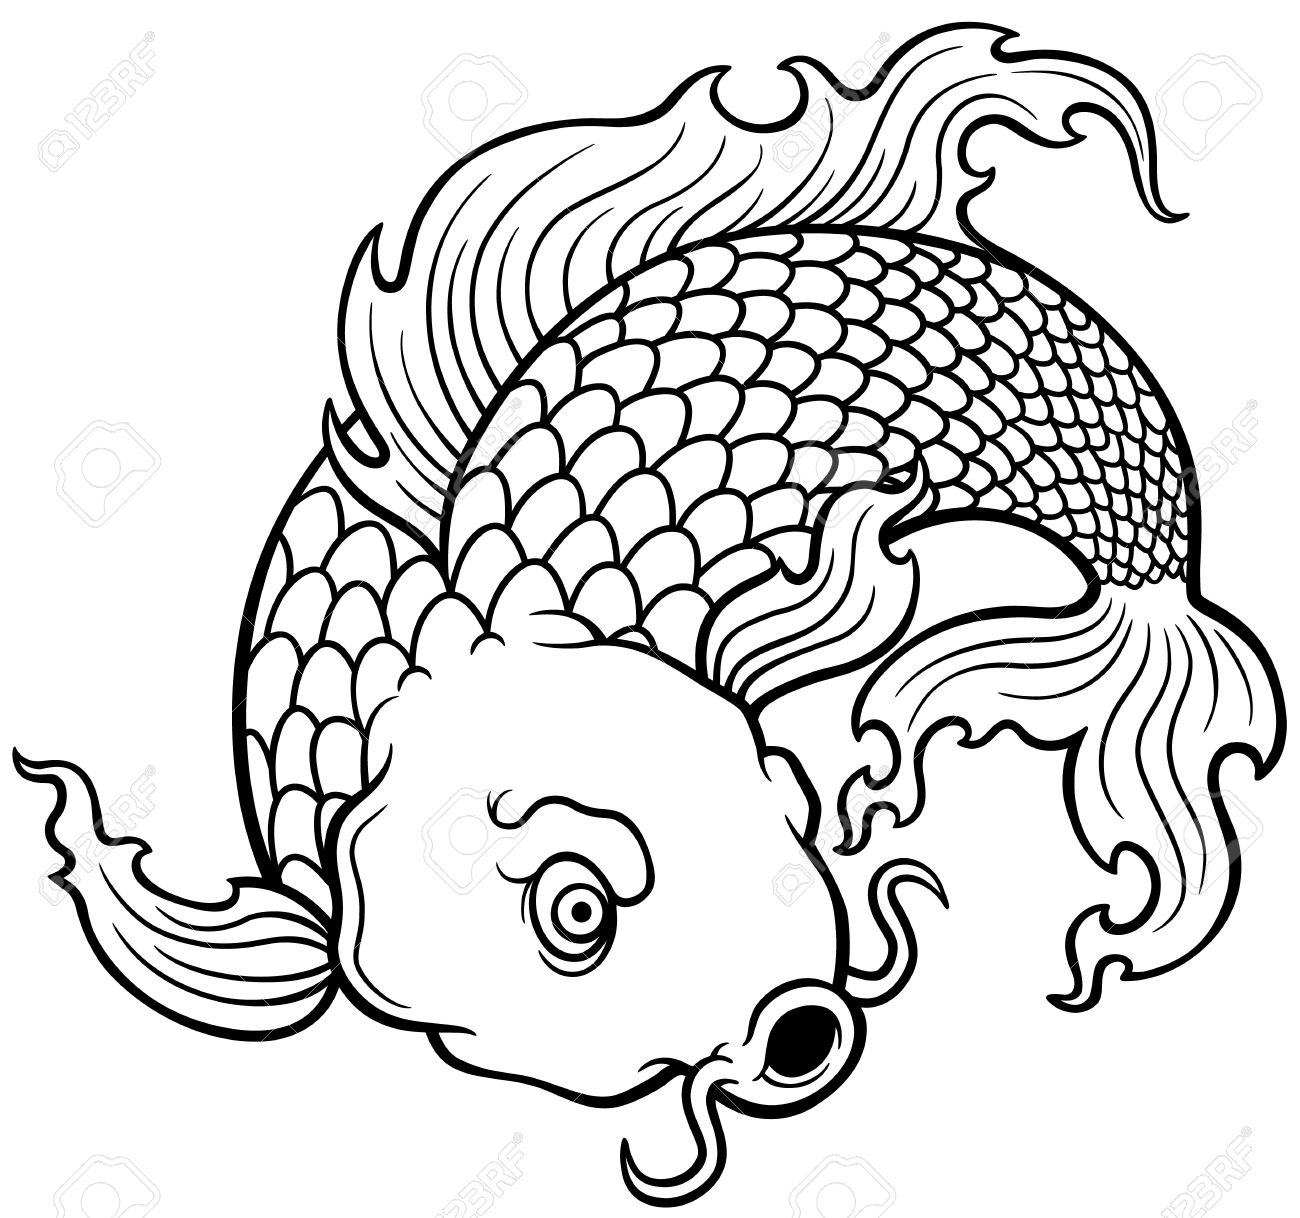 Vector Illustration Of Koi Fish Coloring Book Royalty Free Cliparts Vectors And Stock Illustration Image 27322044